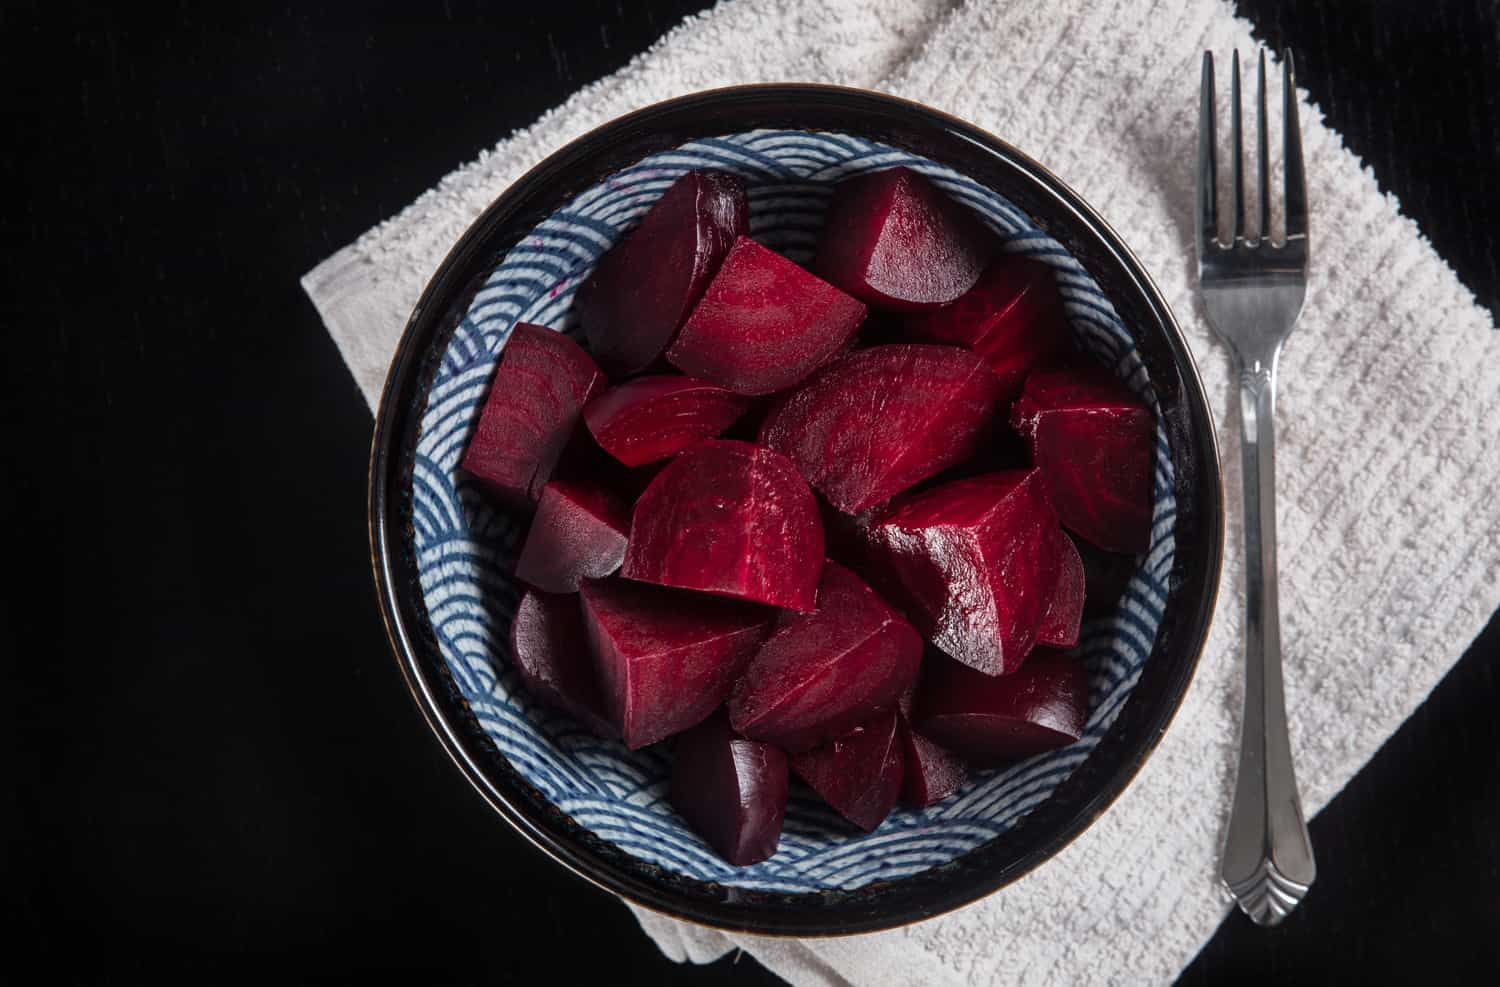 Make Instant Pot Beets Recipe (Pressure Cooker Beets): super easy to make for salads, soups, pickled snacks, desserts, puree, smoothies. Gluten-free, paleo, whole food, vegetarian, vegan.